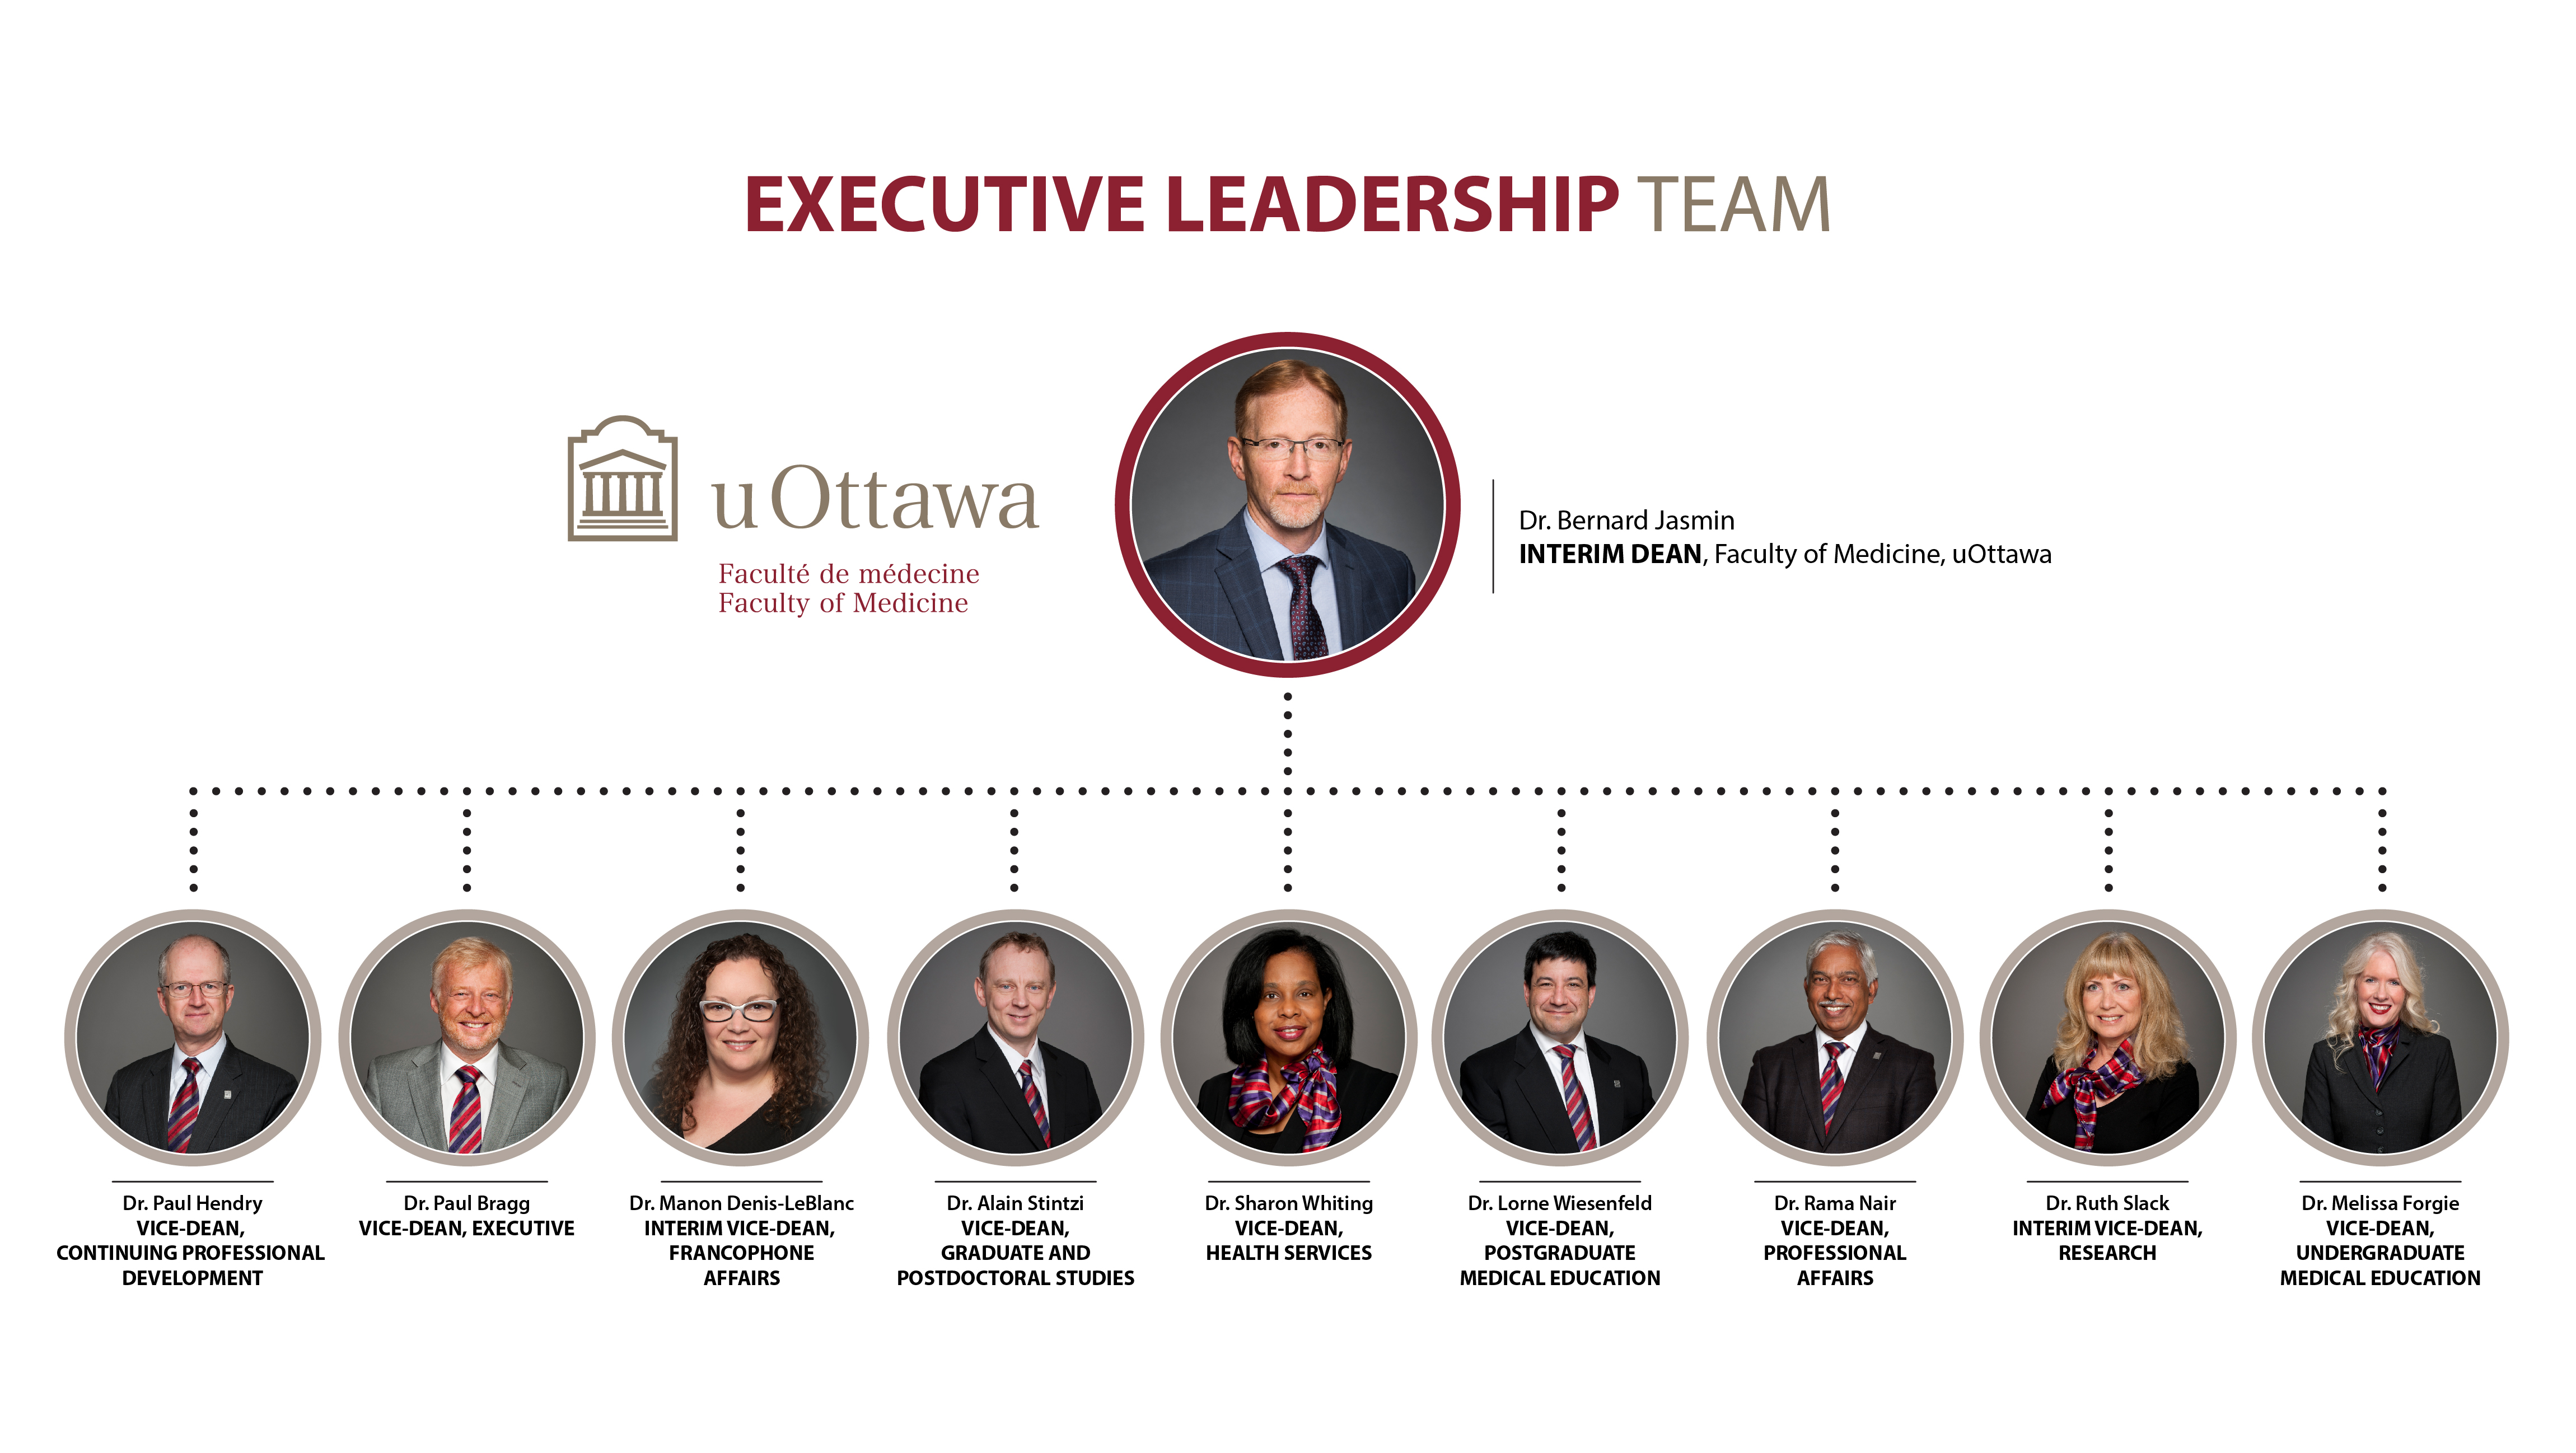 Executive Leadership Team Organizational Chart